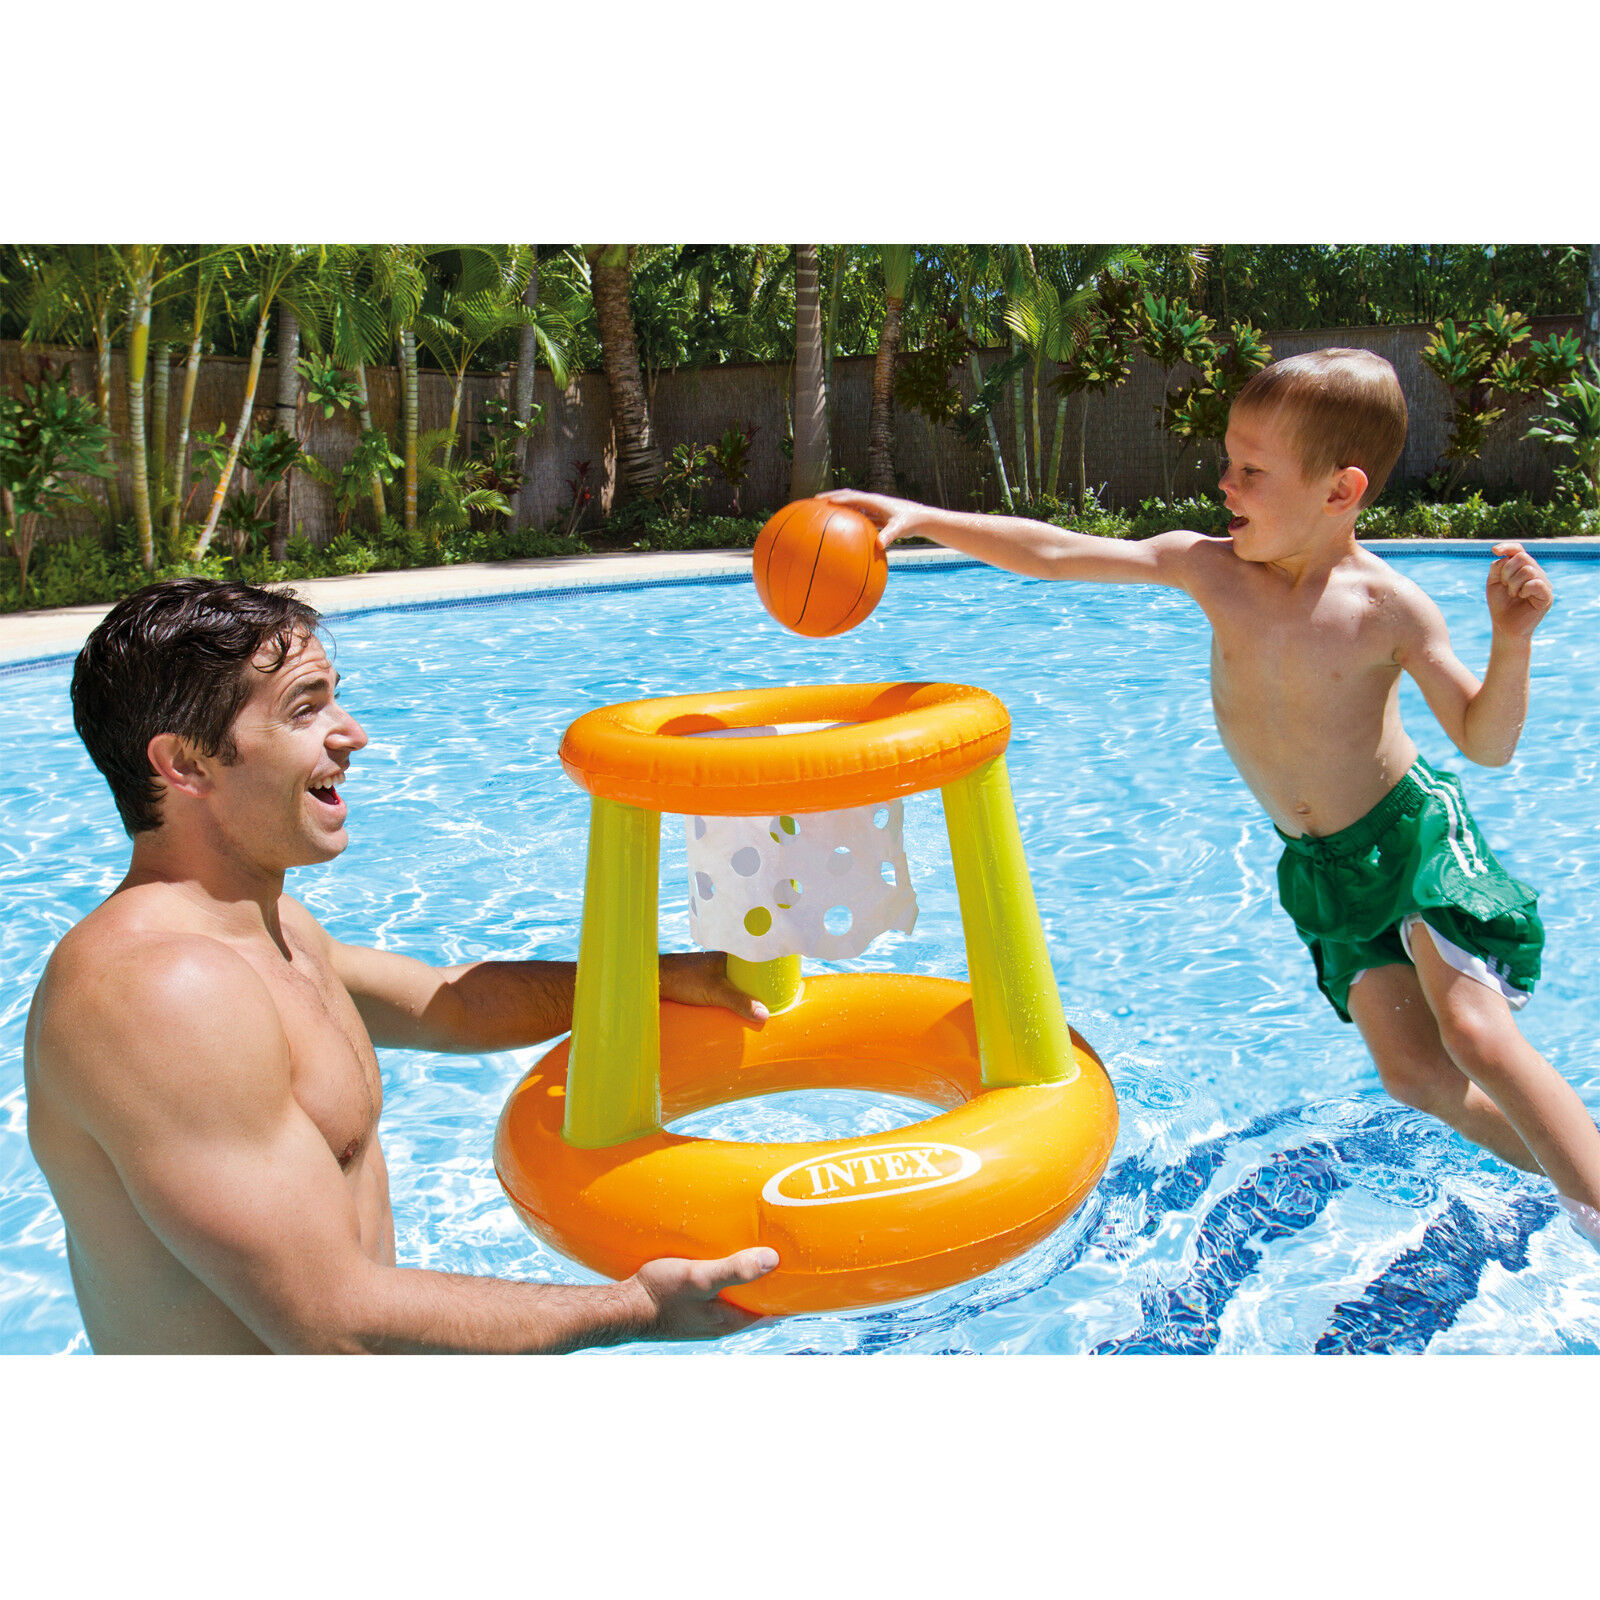 Intex Floating Hoops Inflatable Basket Ball Type Swimming Pool Toy Float #58504